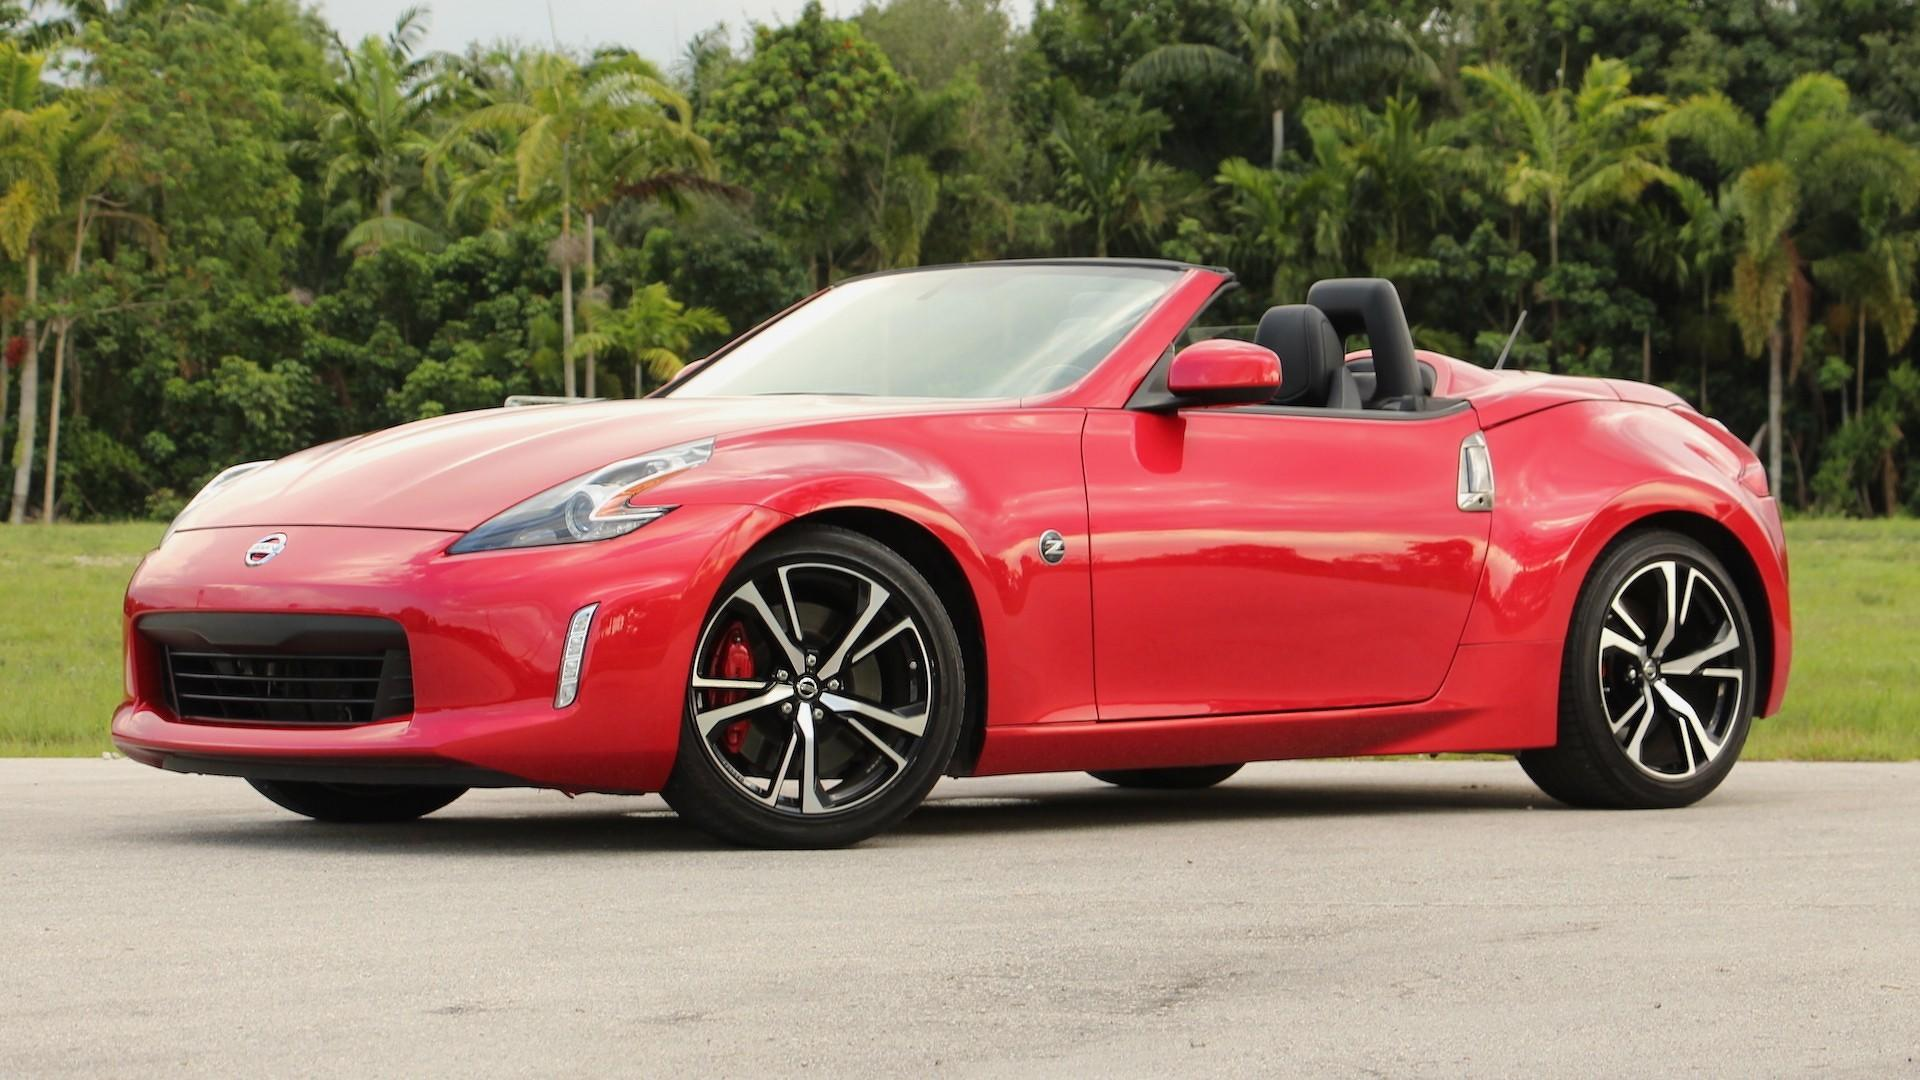 2018 nissan 370z roadster review ready for retirement. Black Bedroom Furniture Sets. Home Design Ideas